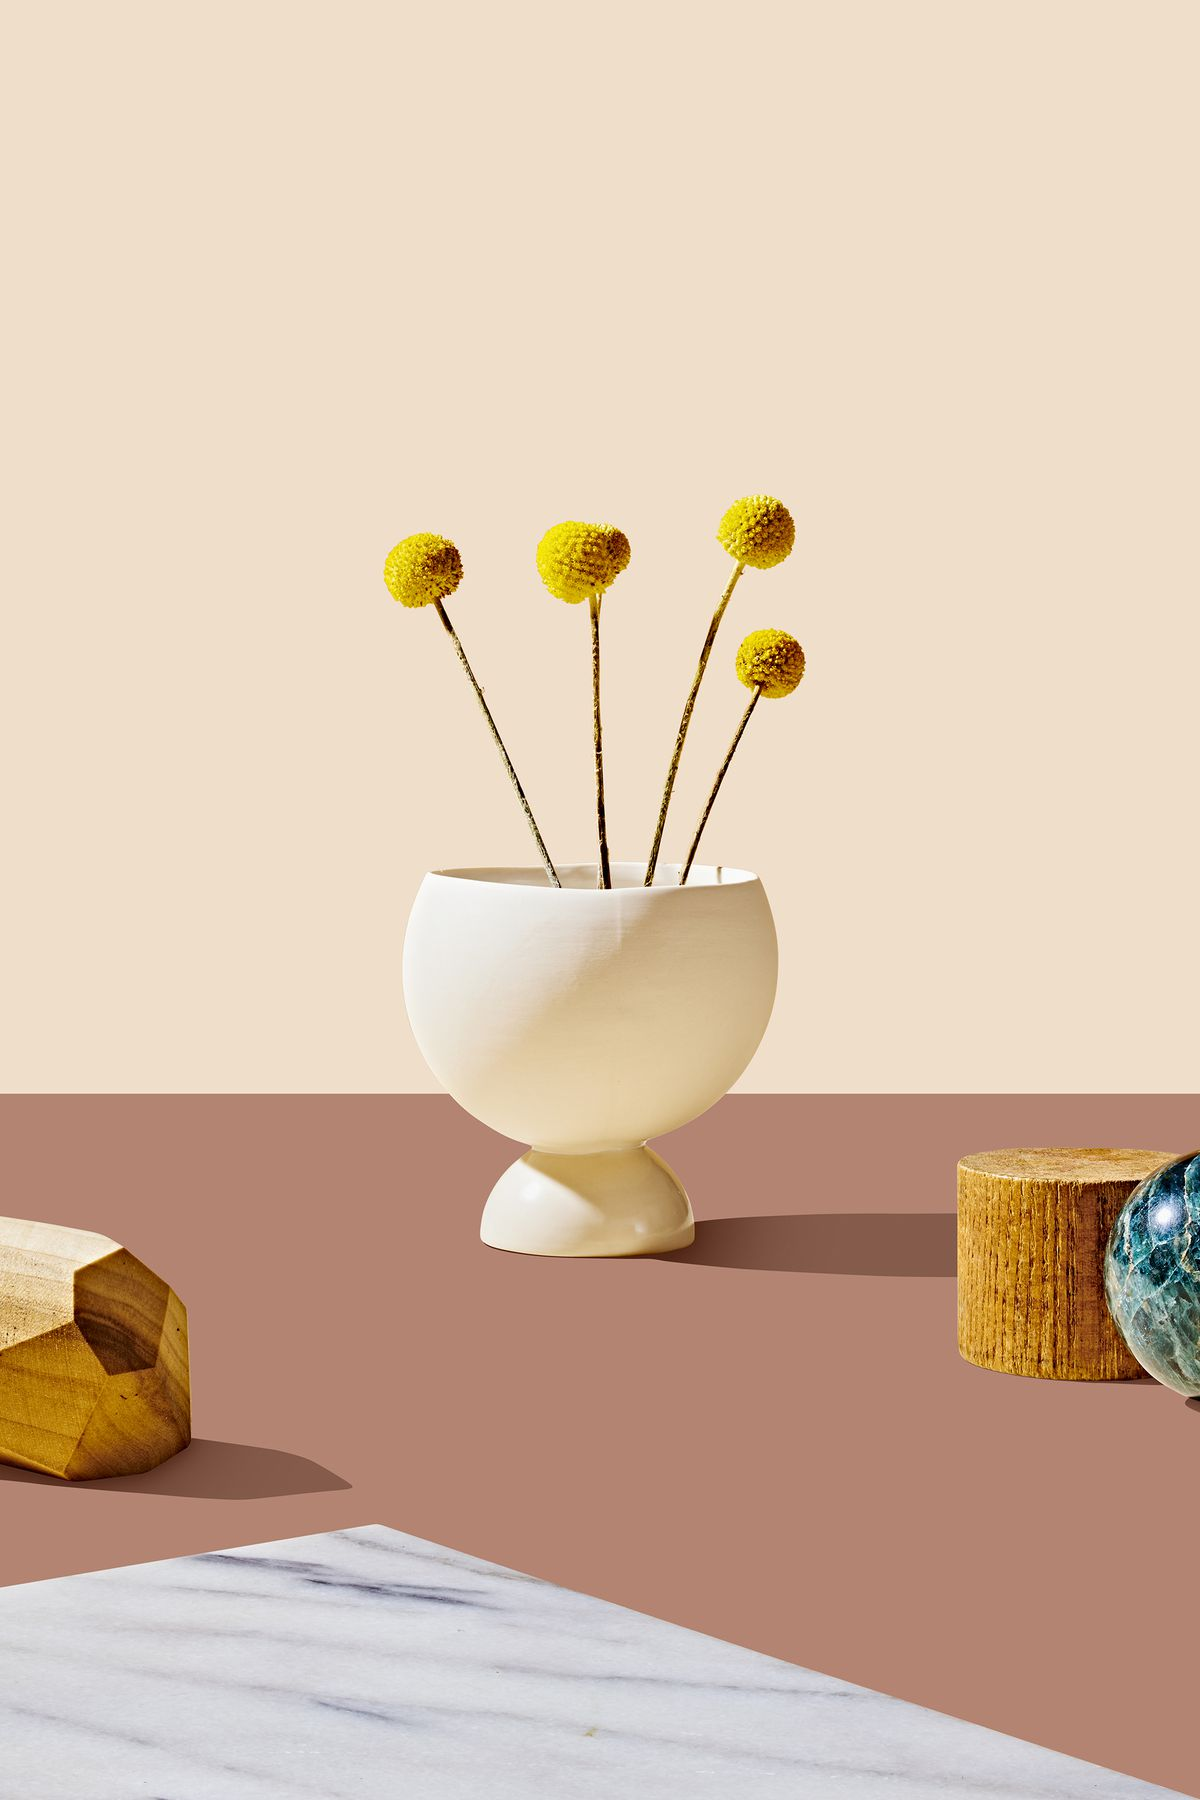 A white stoneware vase with yellow flowers. This is part of the 2019 Holiday Gift Guide for Curbed. The vase is sitting on a flat mauve surface and is flanked by various design objects.